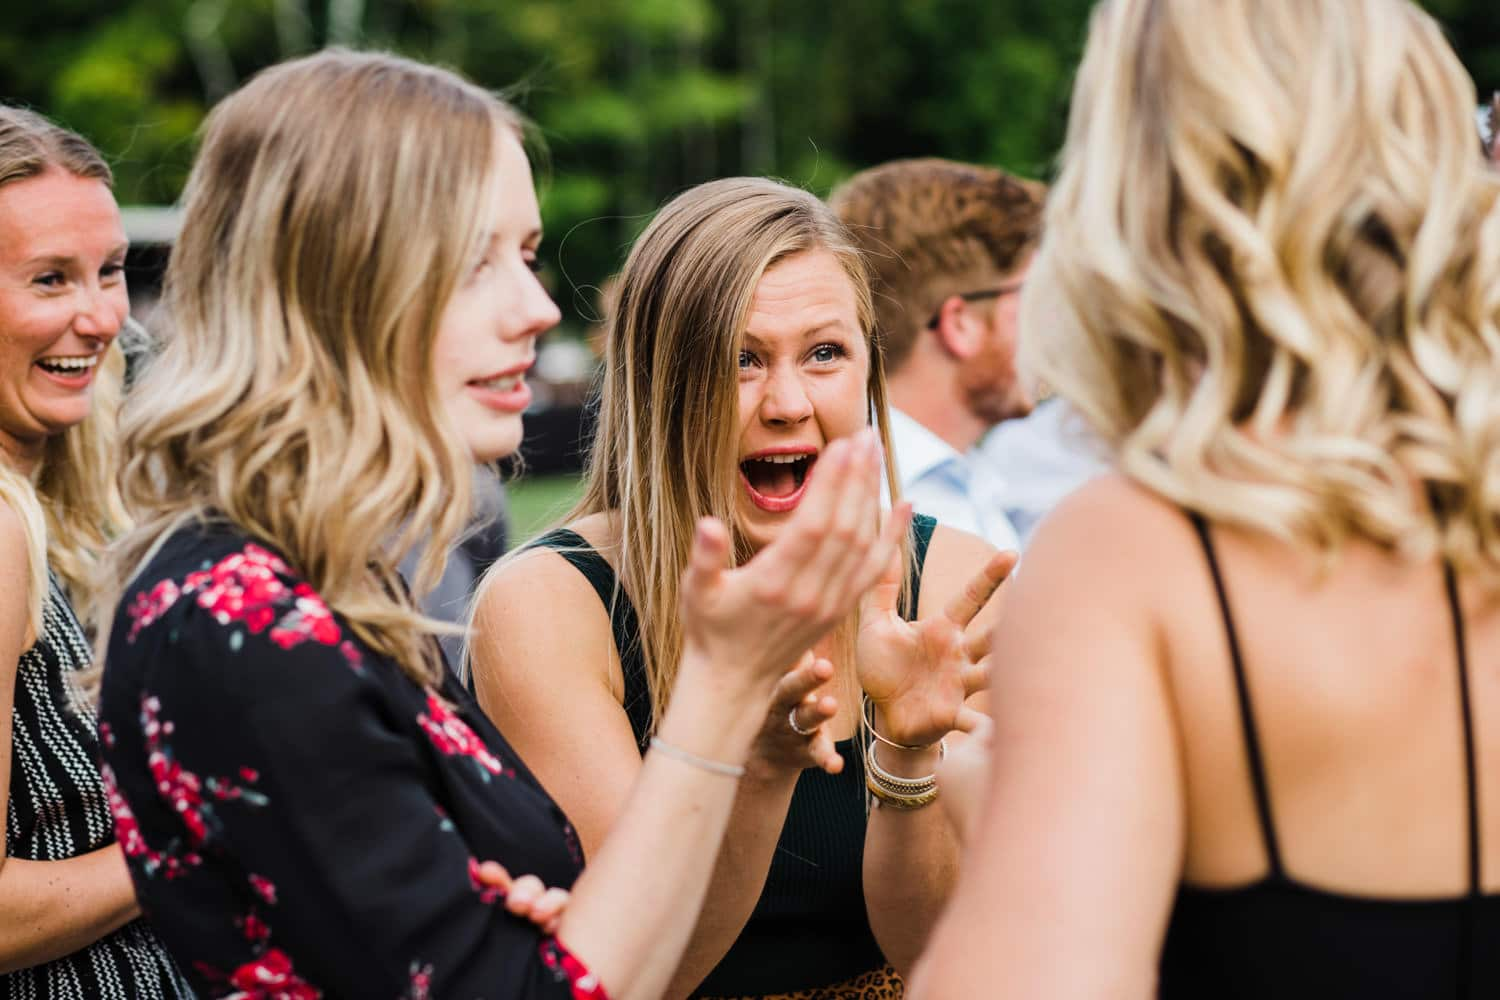 guests react after outdoor surprise wedding ceremony